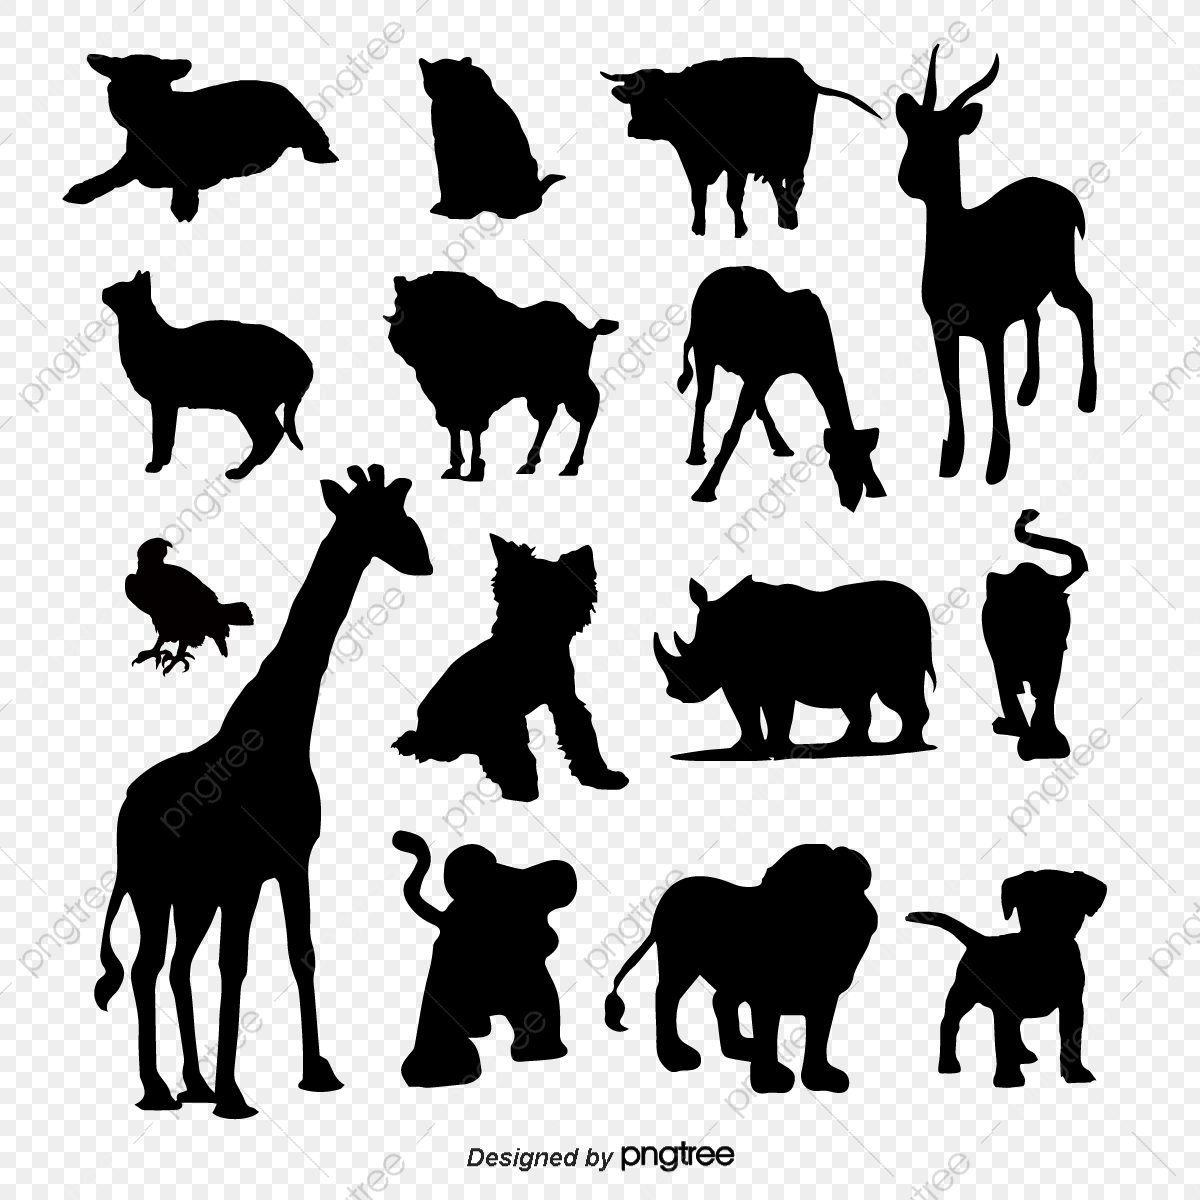 Creative Animal Silhouettes Lion King Animal Vector Animal Silhouettes Sketch Png And Vector With Transparent Background For Free Download